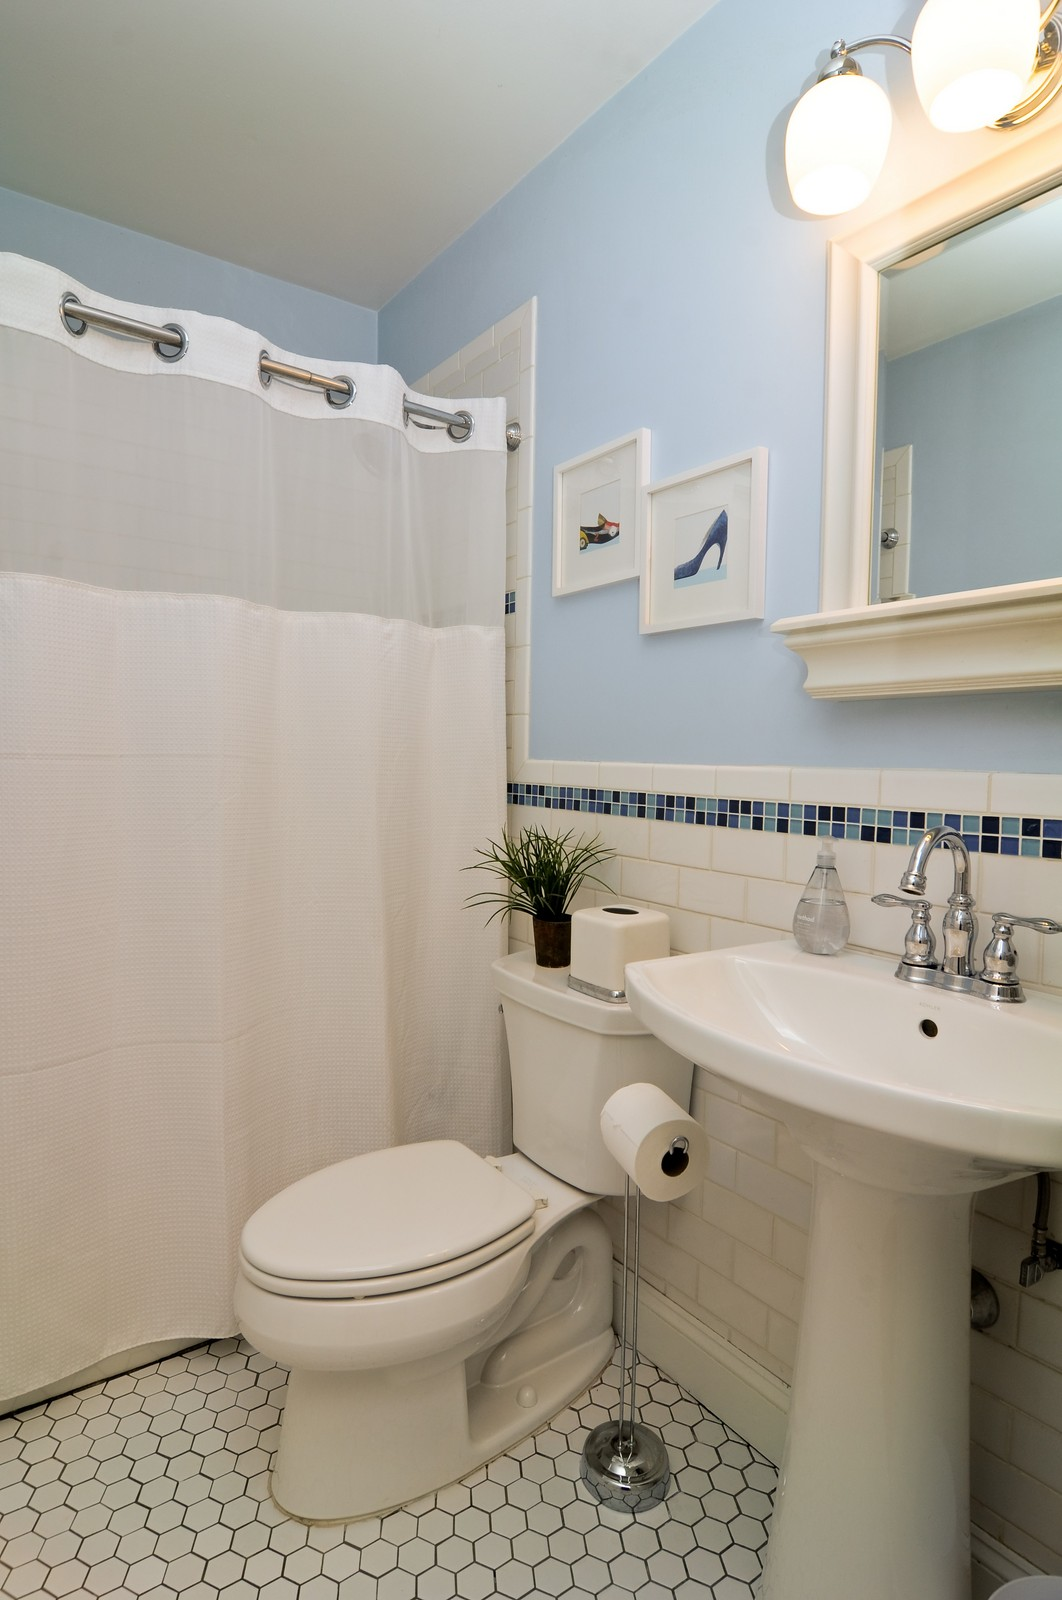 Real Estate Photography - 1615 Chippendale Rd, Hoffman Estates, IL, 60195 - Bathroom